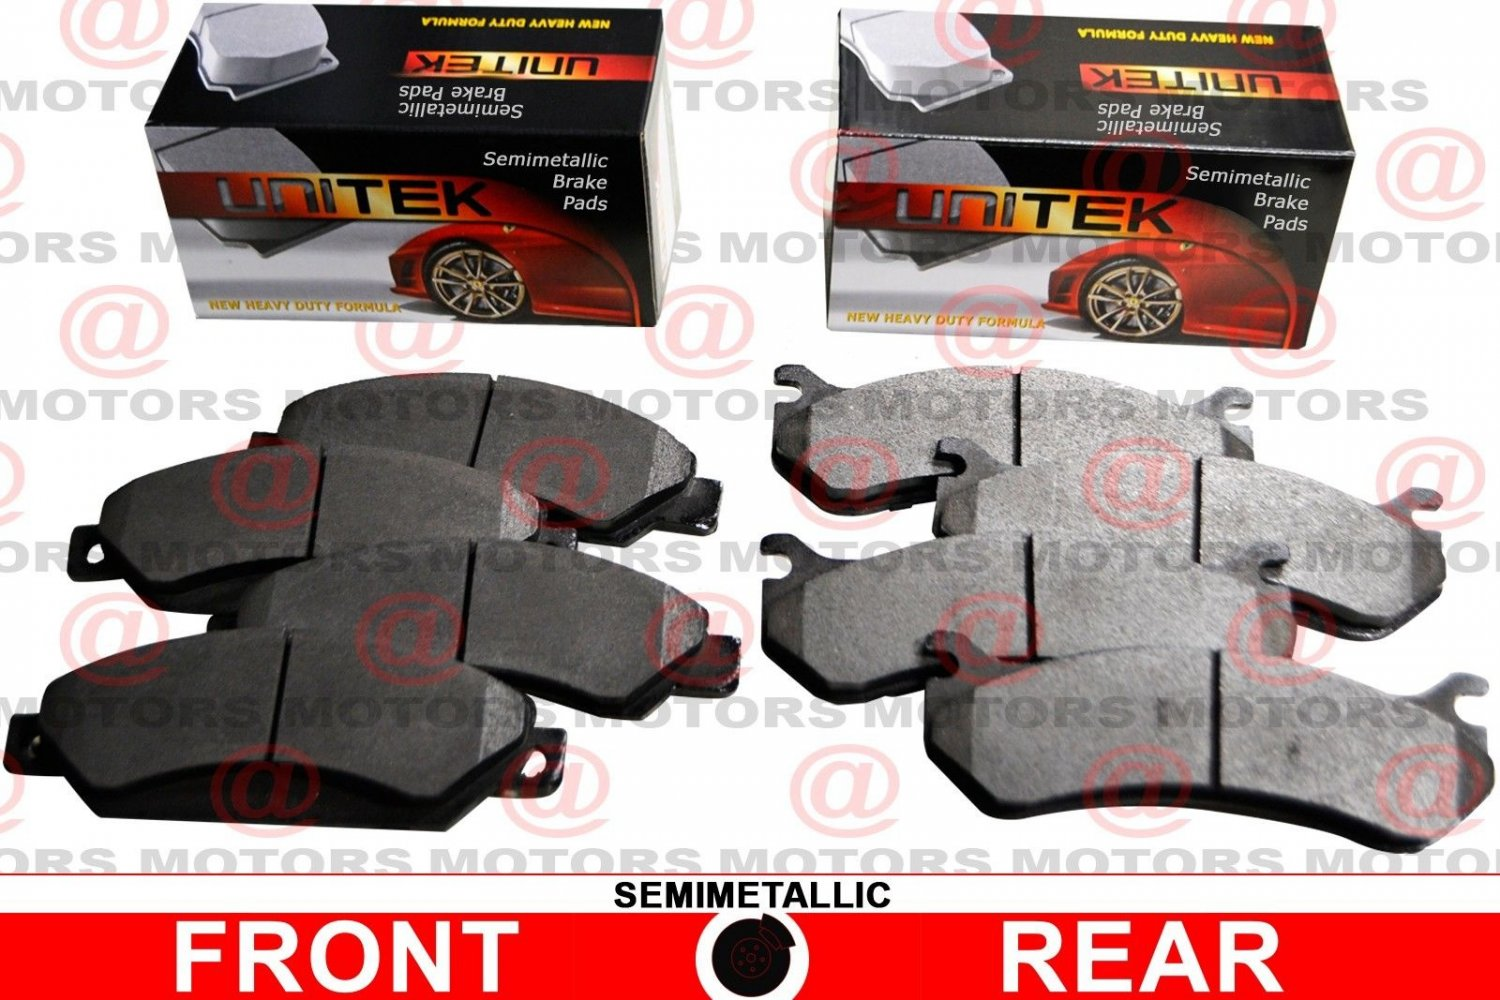 For Nissan SENTRA 2007-2012 Front And Rear Left Right Brake Pads New